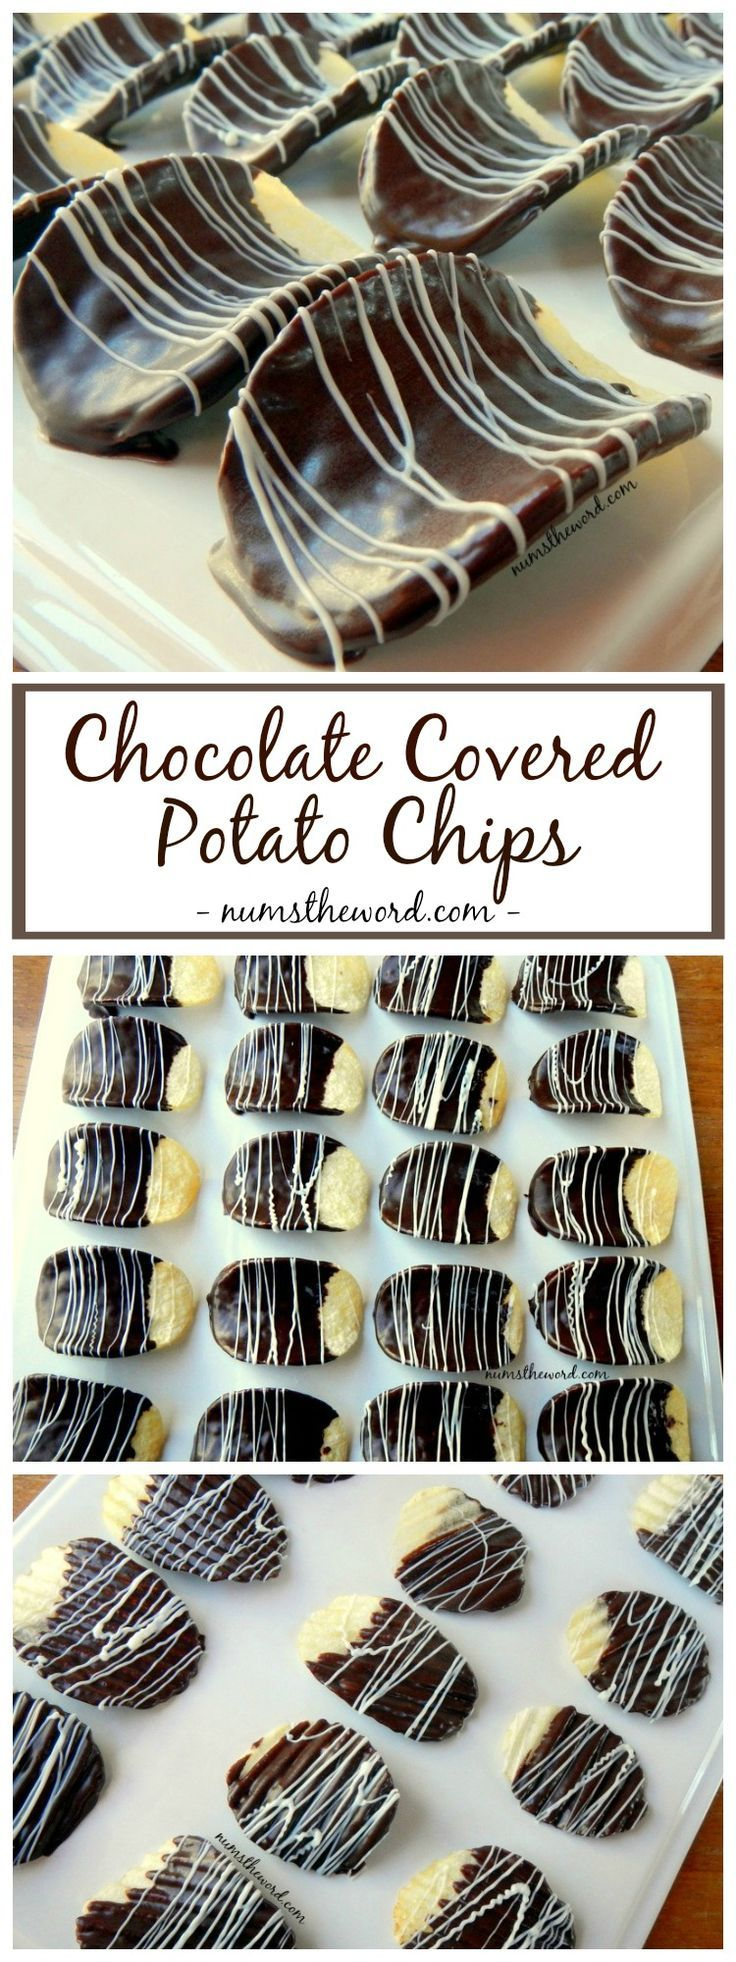 This tasty treat is easy to make and will be hard to keep on hand. Chocolate Covered Potato Chips is a family favorite and super easy to make! A great gift!